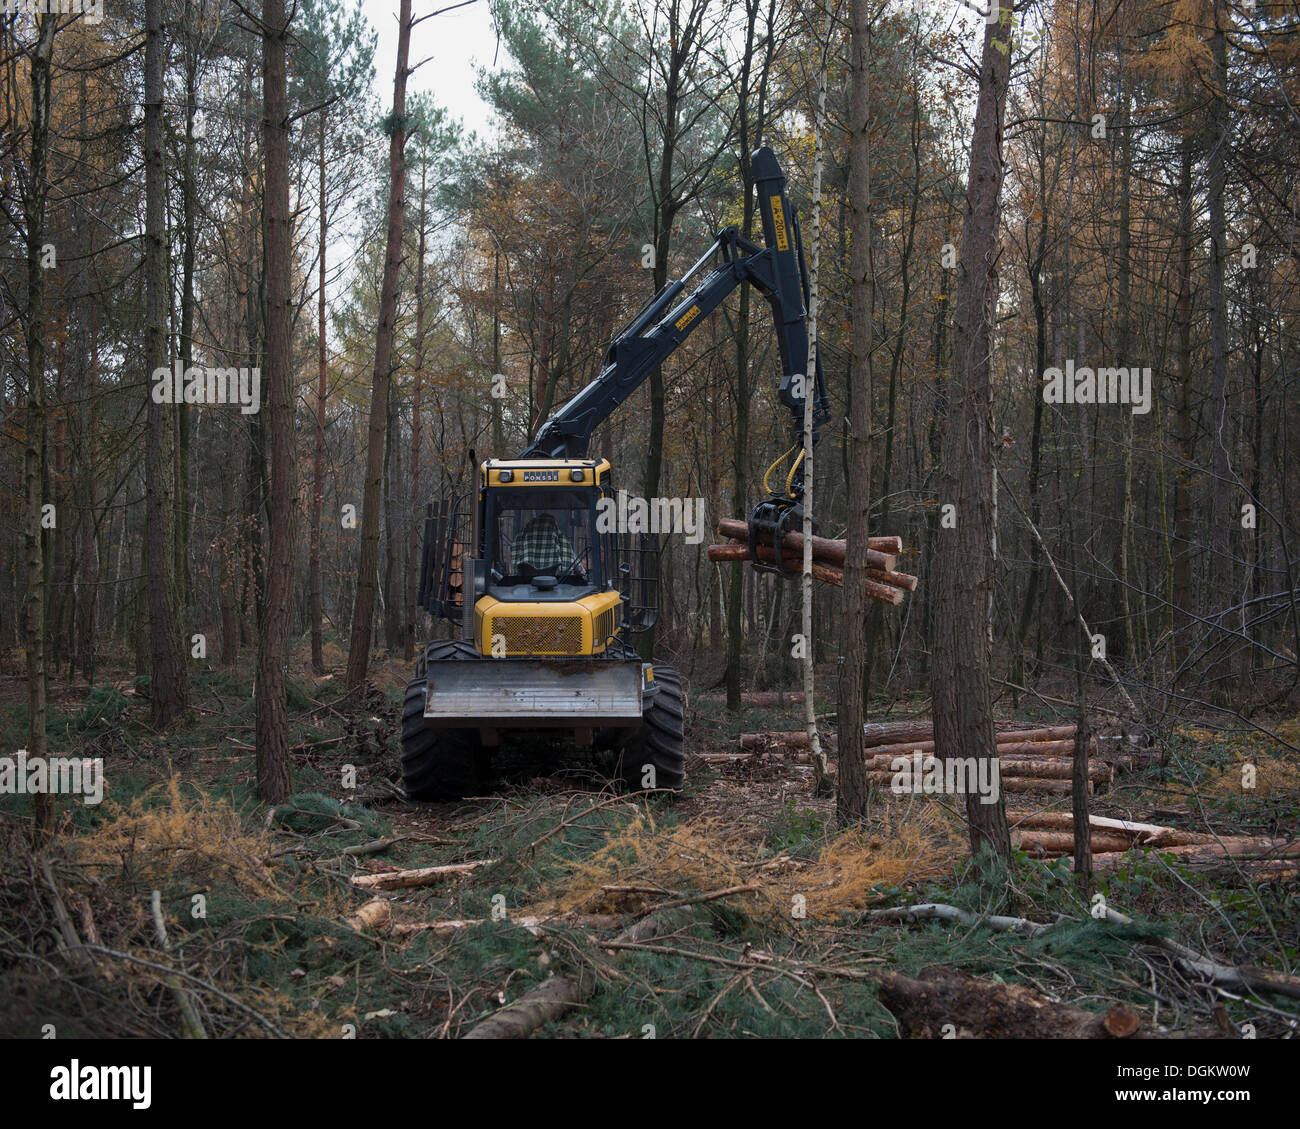 Forestry forwarder harvesting timber, working in a rough forest, Bonn, Rhineland, North Rhine-Westphalia, Germany - Stock Image